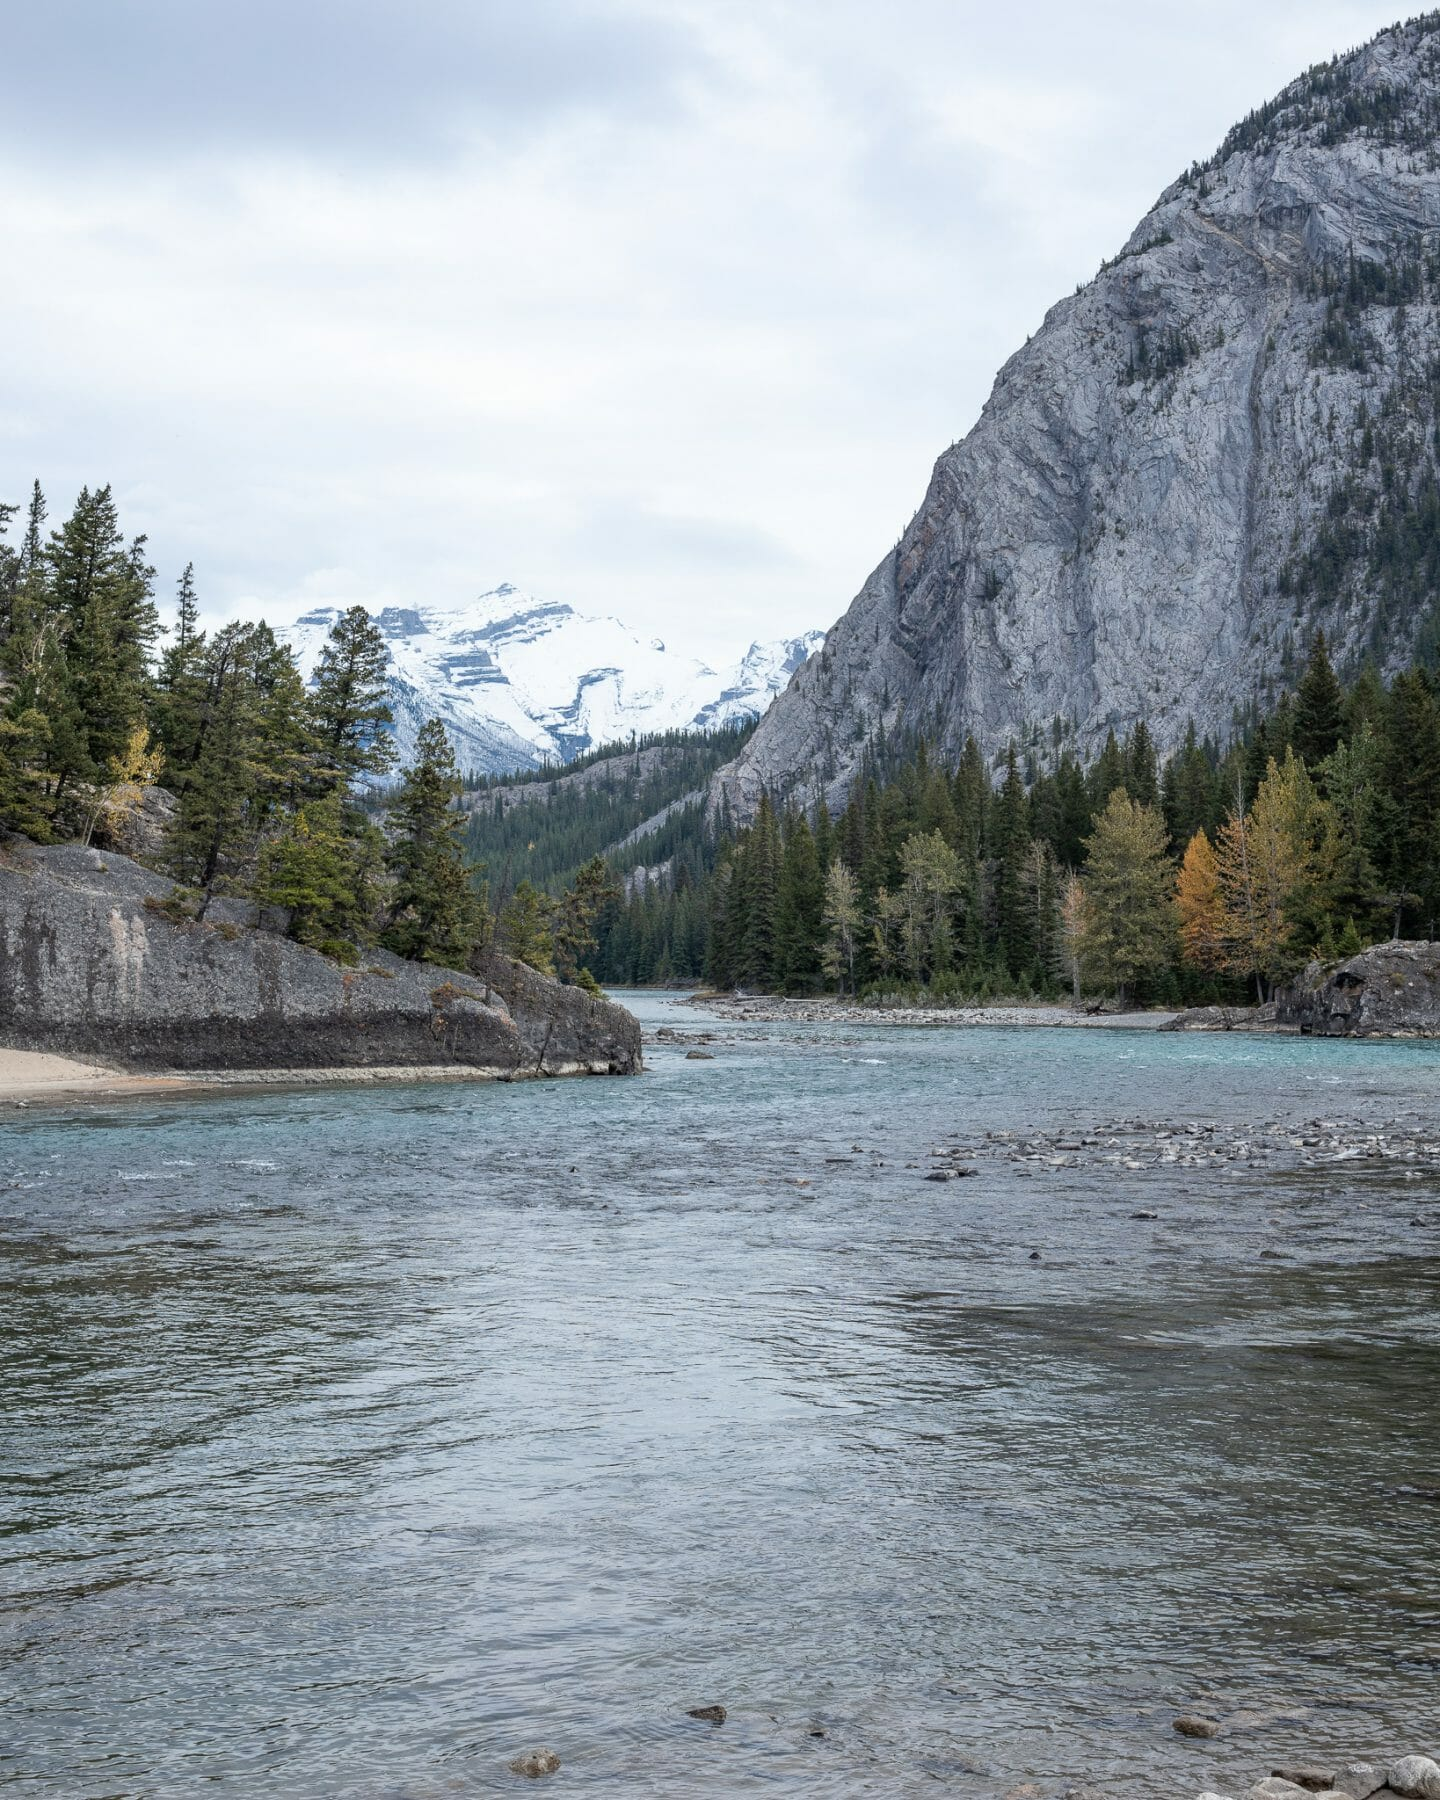 4 Days in Banff - View of Bow River